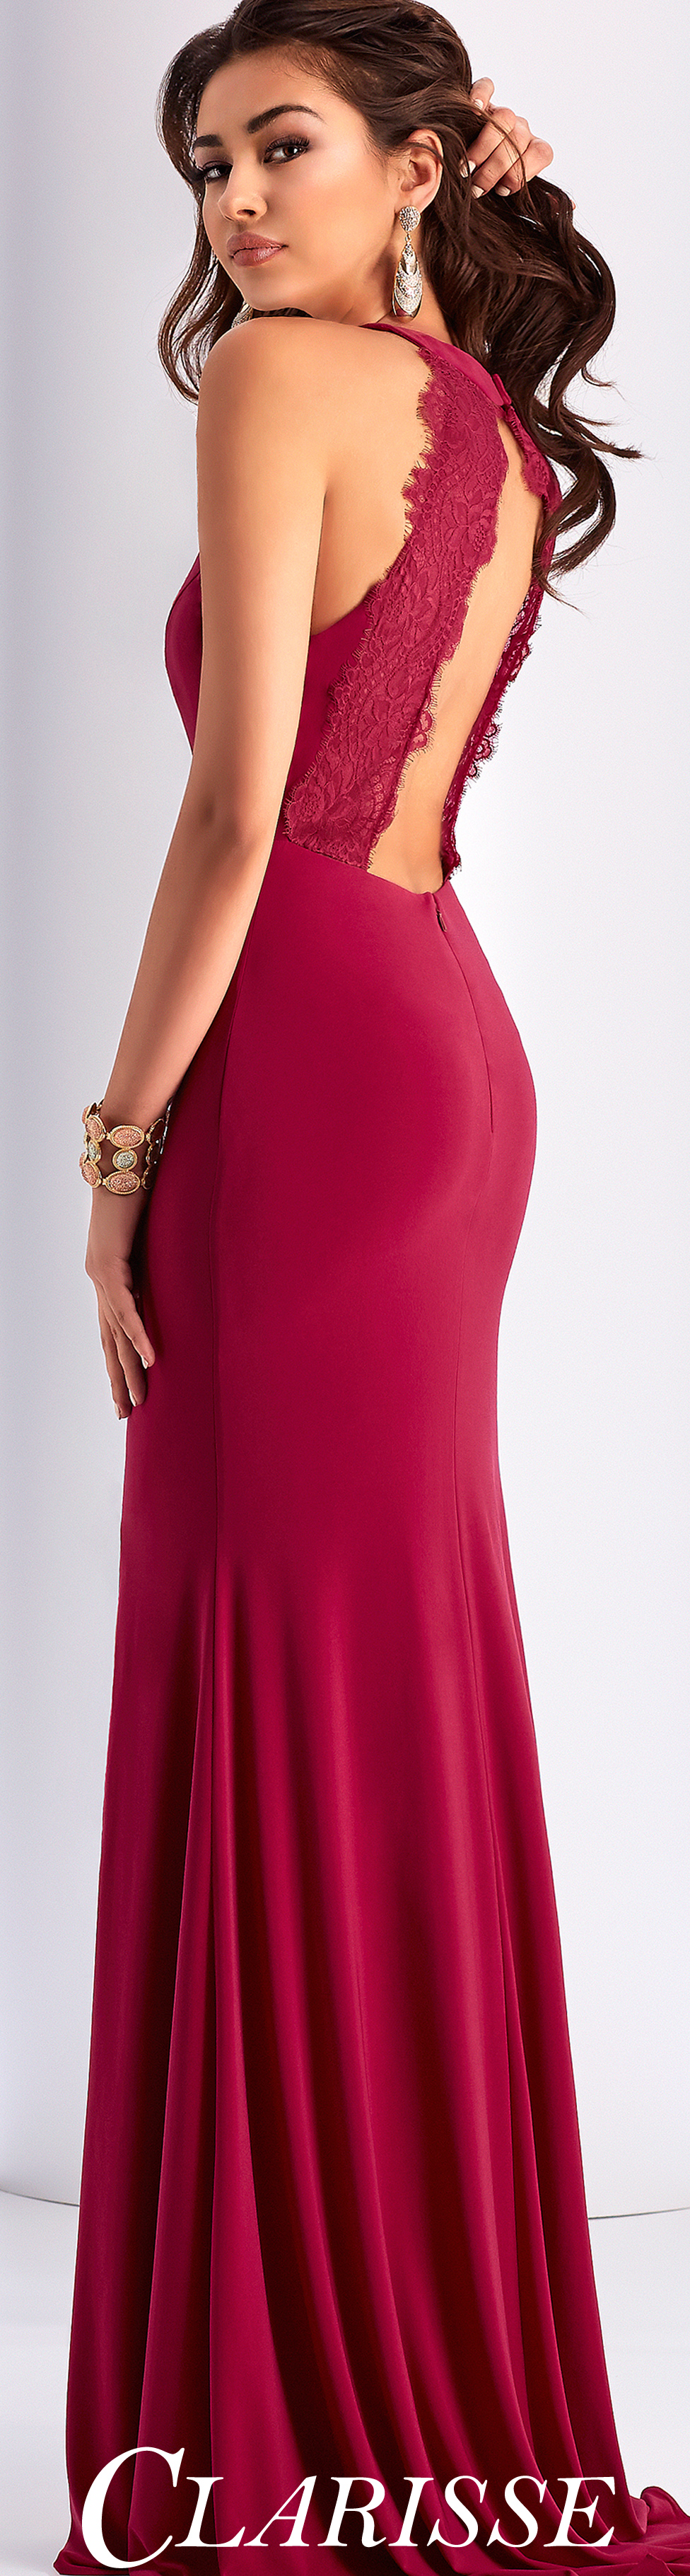 c00bbbd059b Clarisse Fitted Prom Dress 3048. Simple halter prom dress with sexy slit